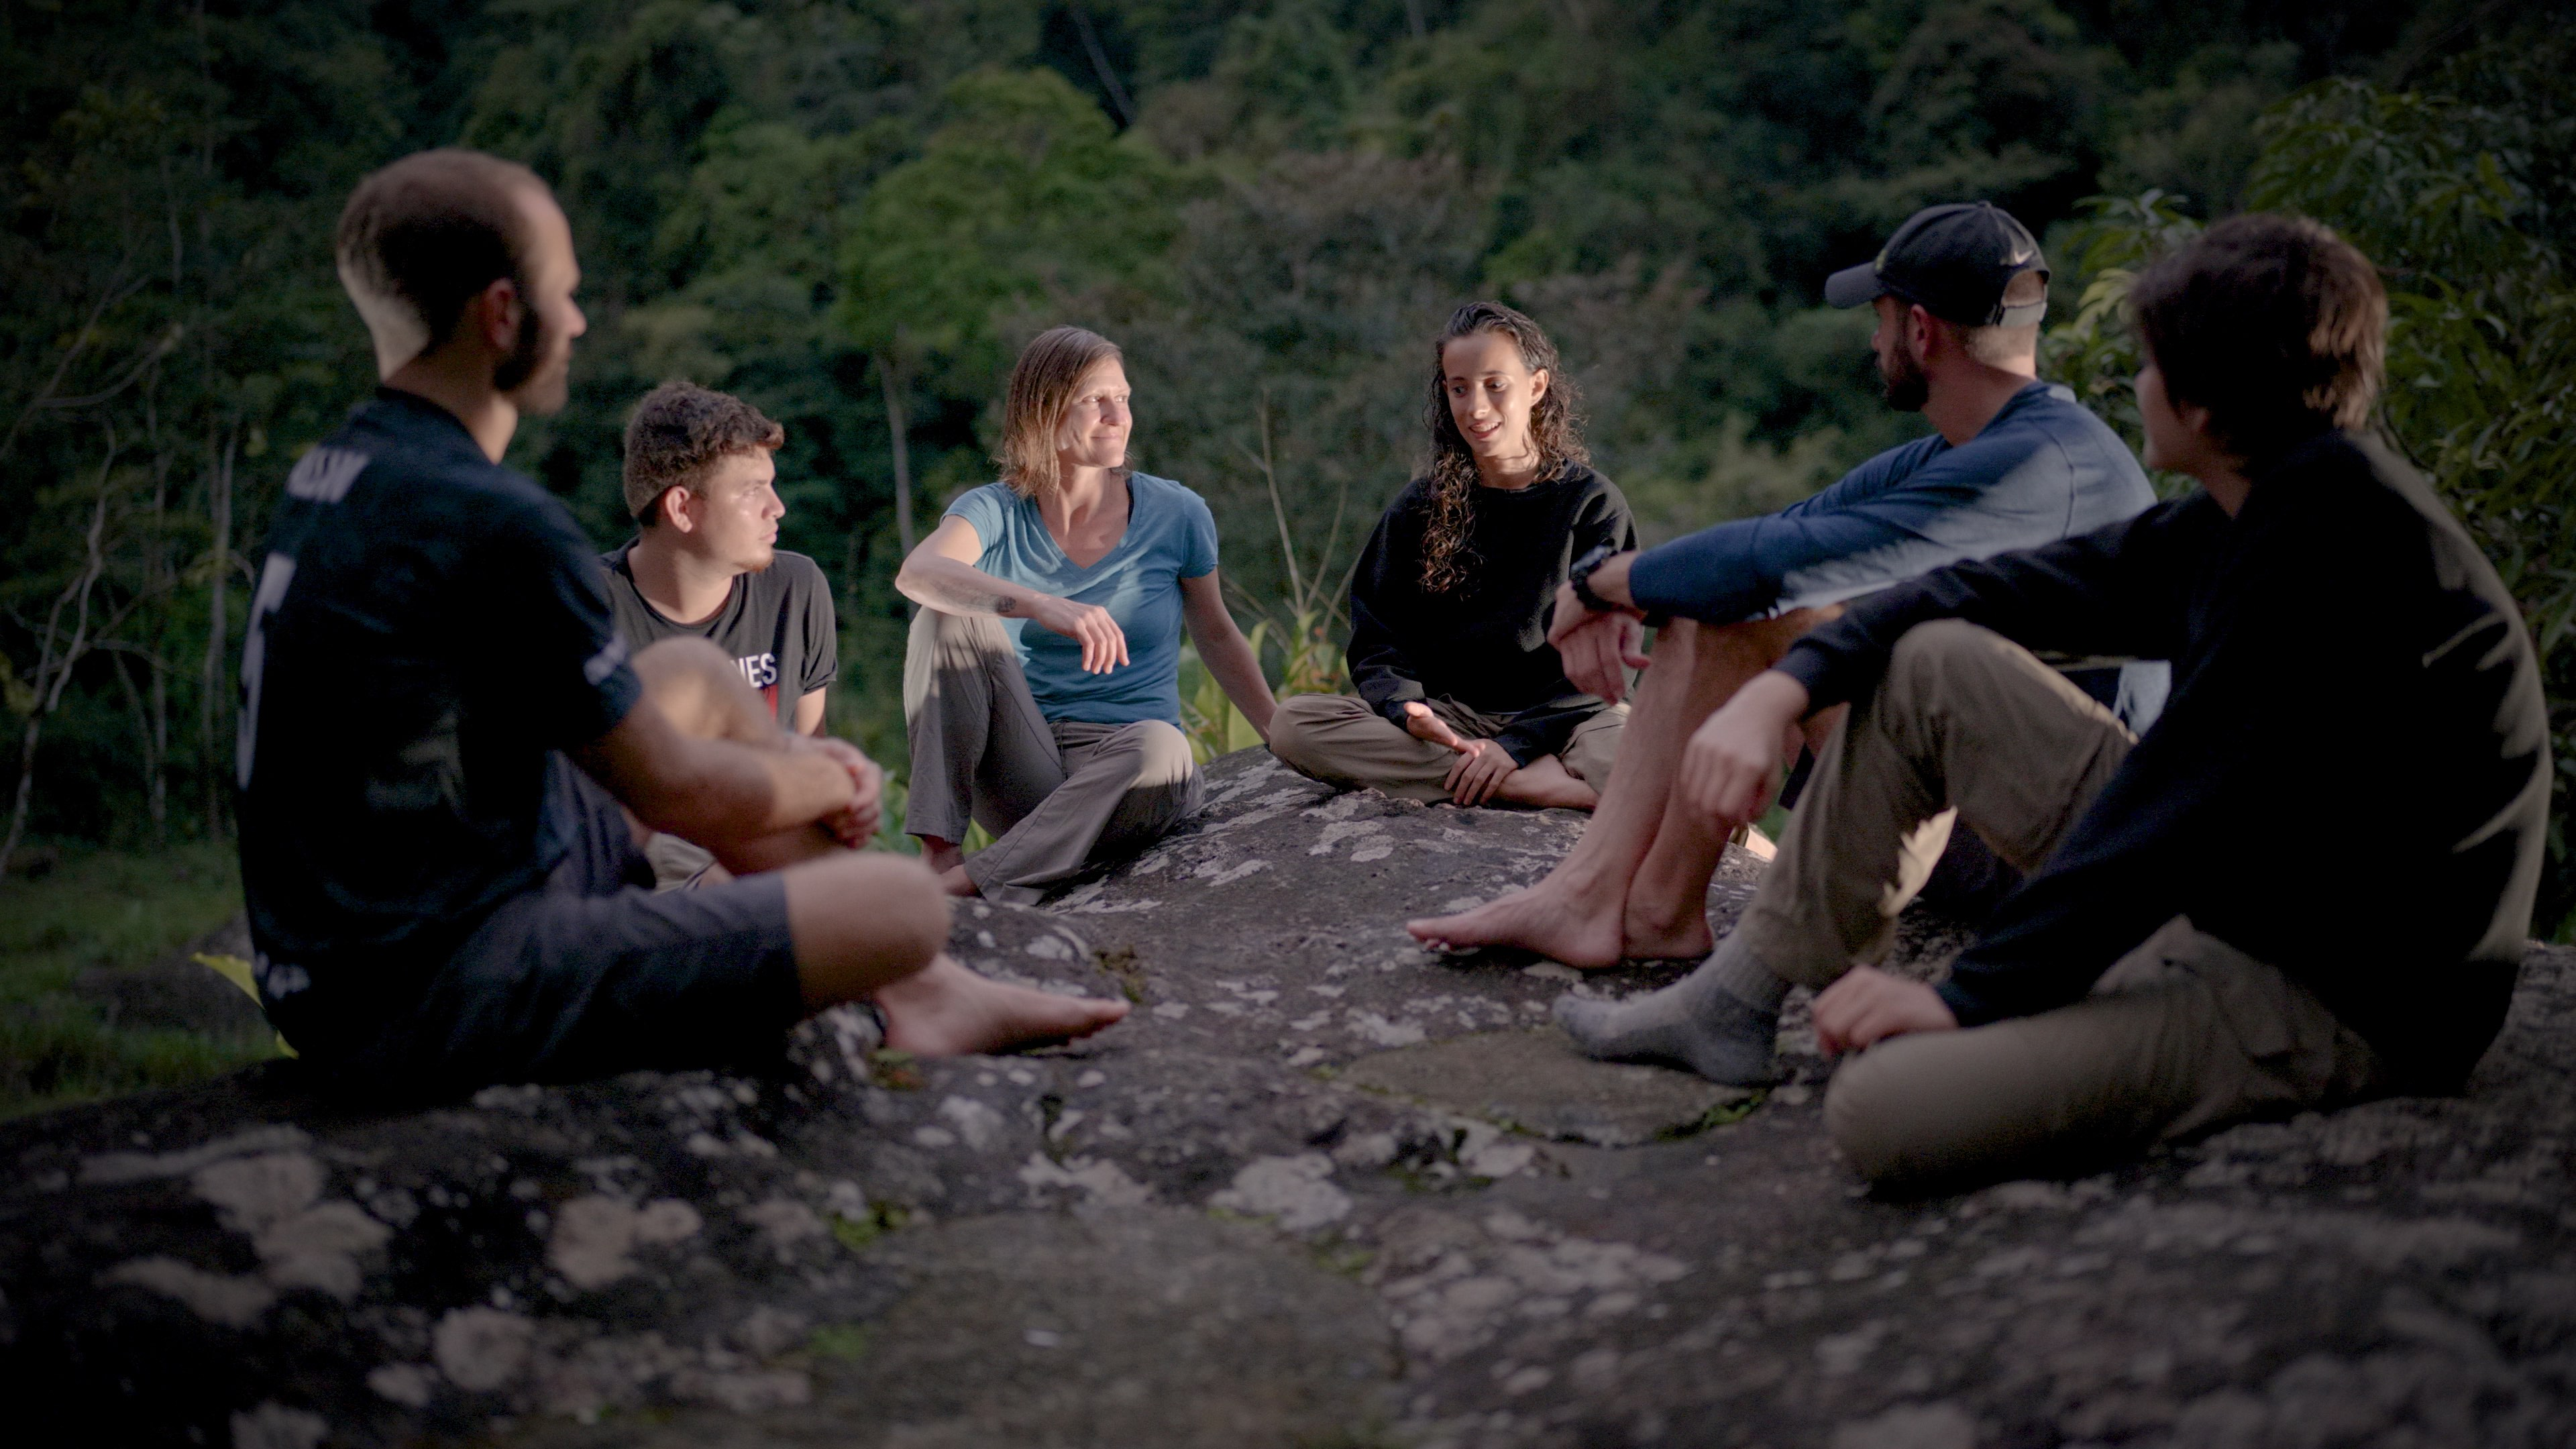 Group of teens in therapy sitting around a camp fire